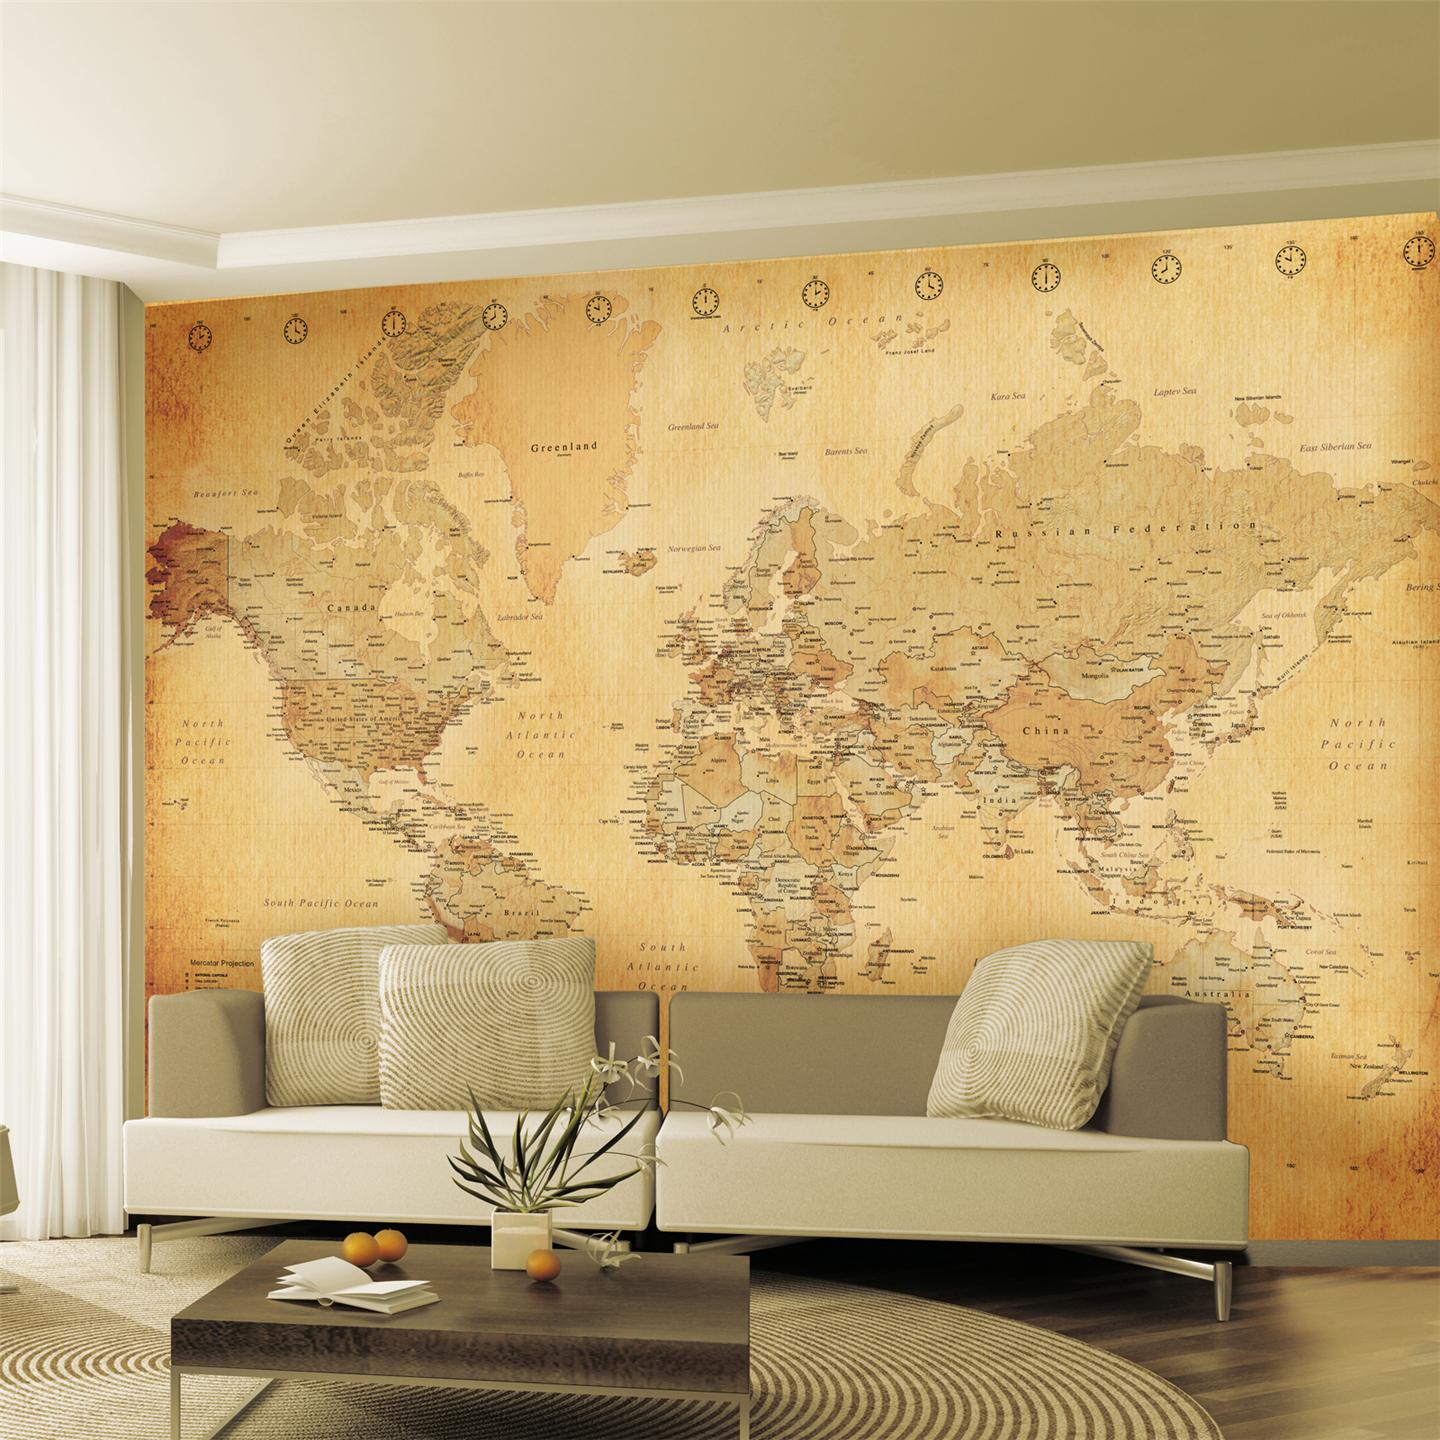 Large wallpaper feature wall murals landscapes for Mural wallpaper